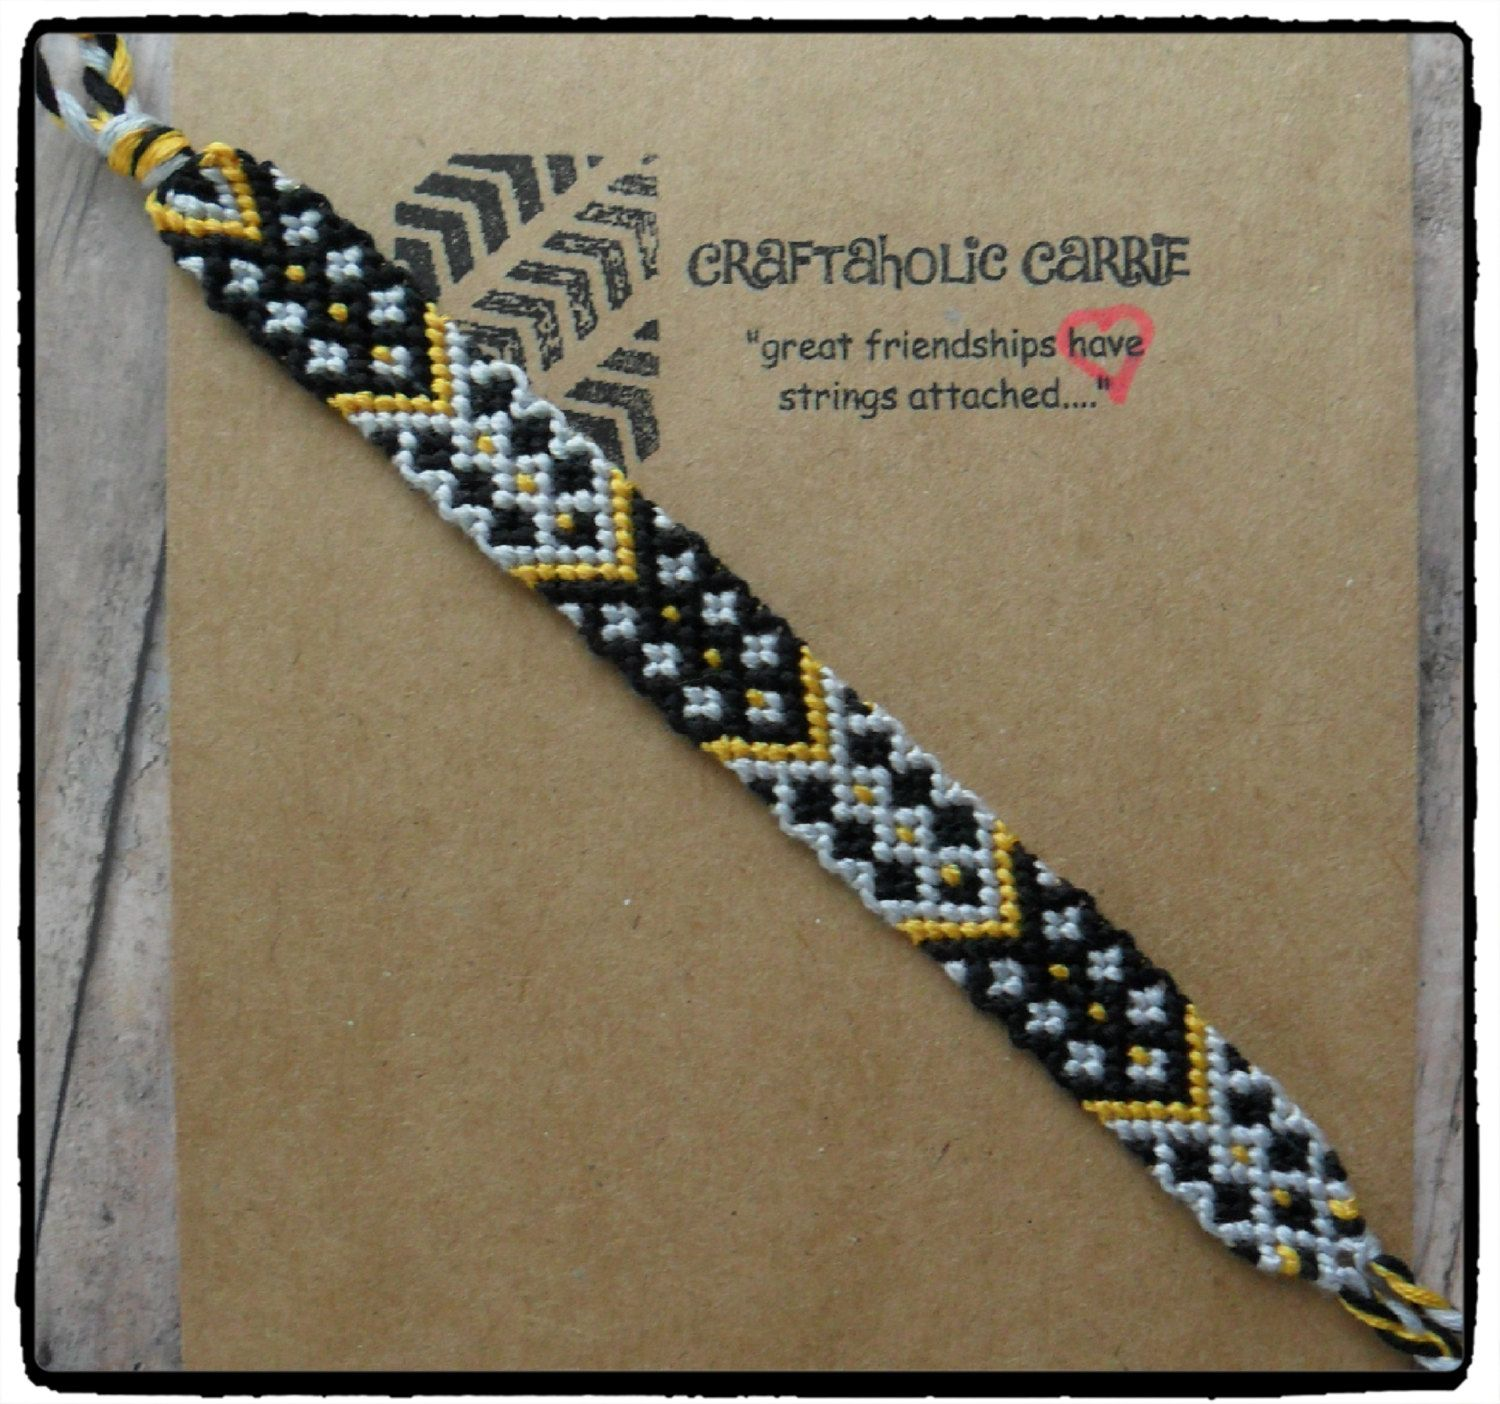 New Years Themed Woven Friendship Bracelet by CraftaholicCarrie on Etsy